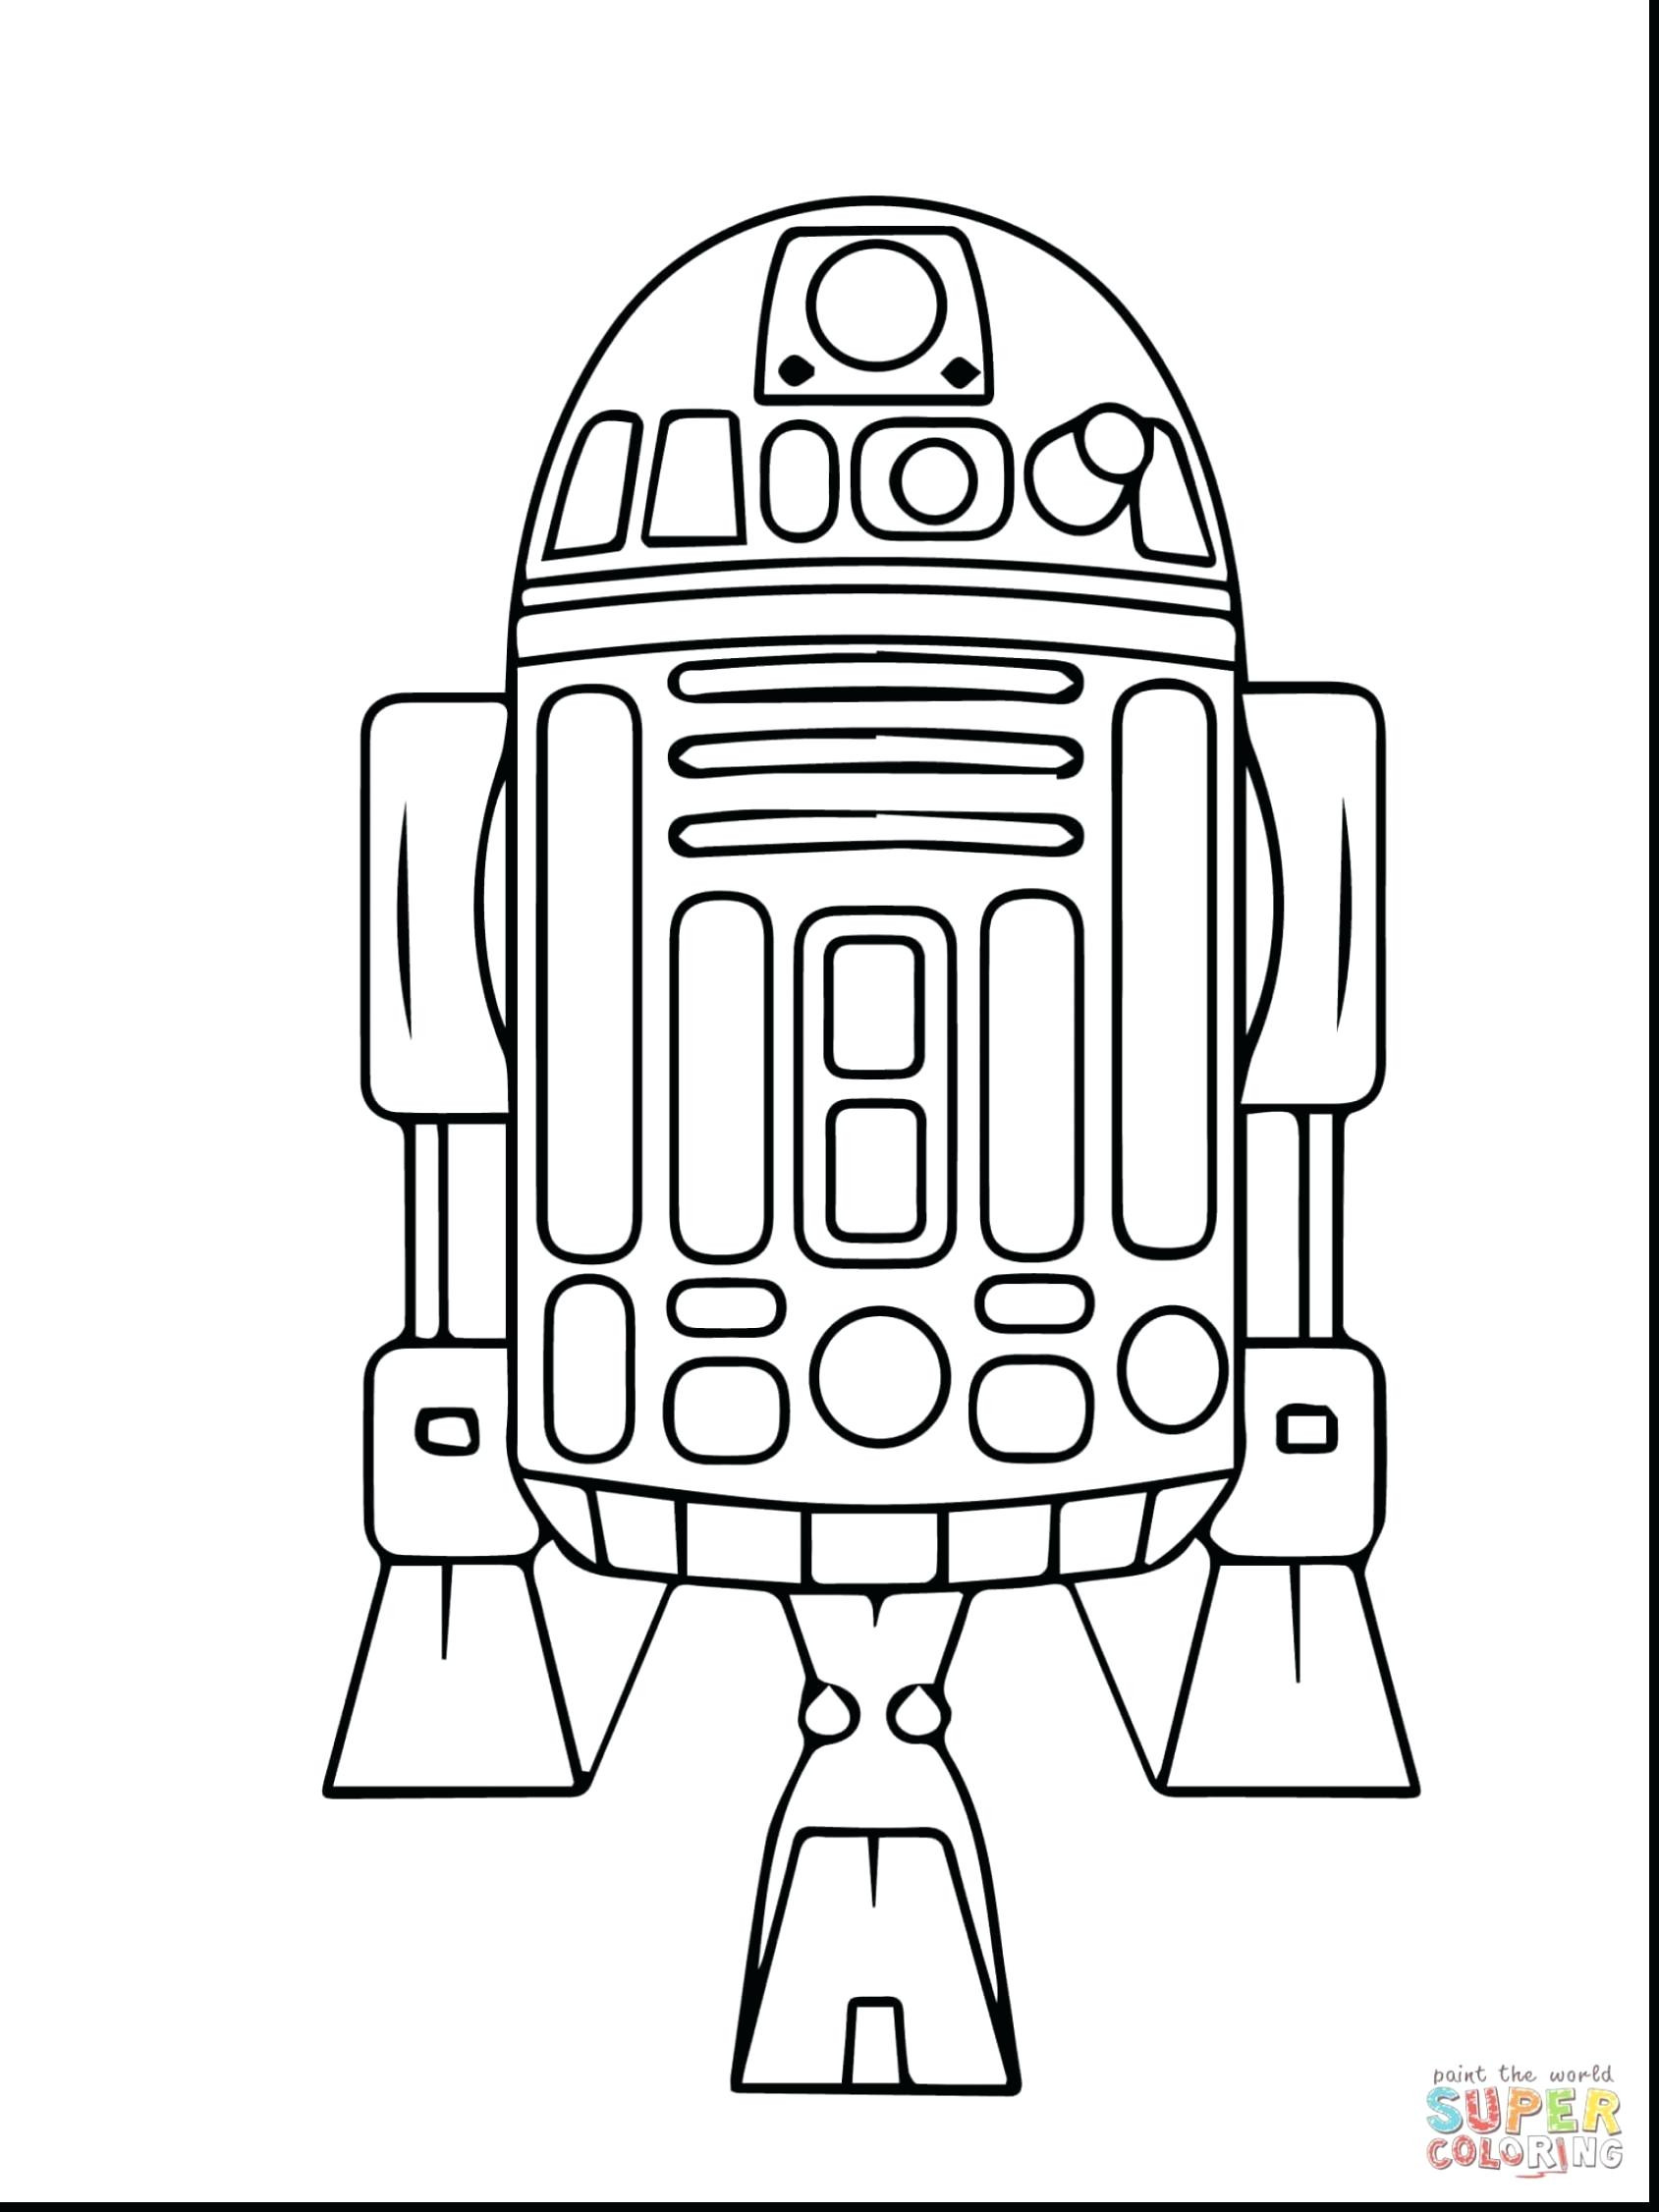 1689x2252 Free Printable Star Wars The Last Jedi Coloring Pages Adorable